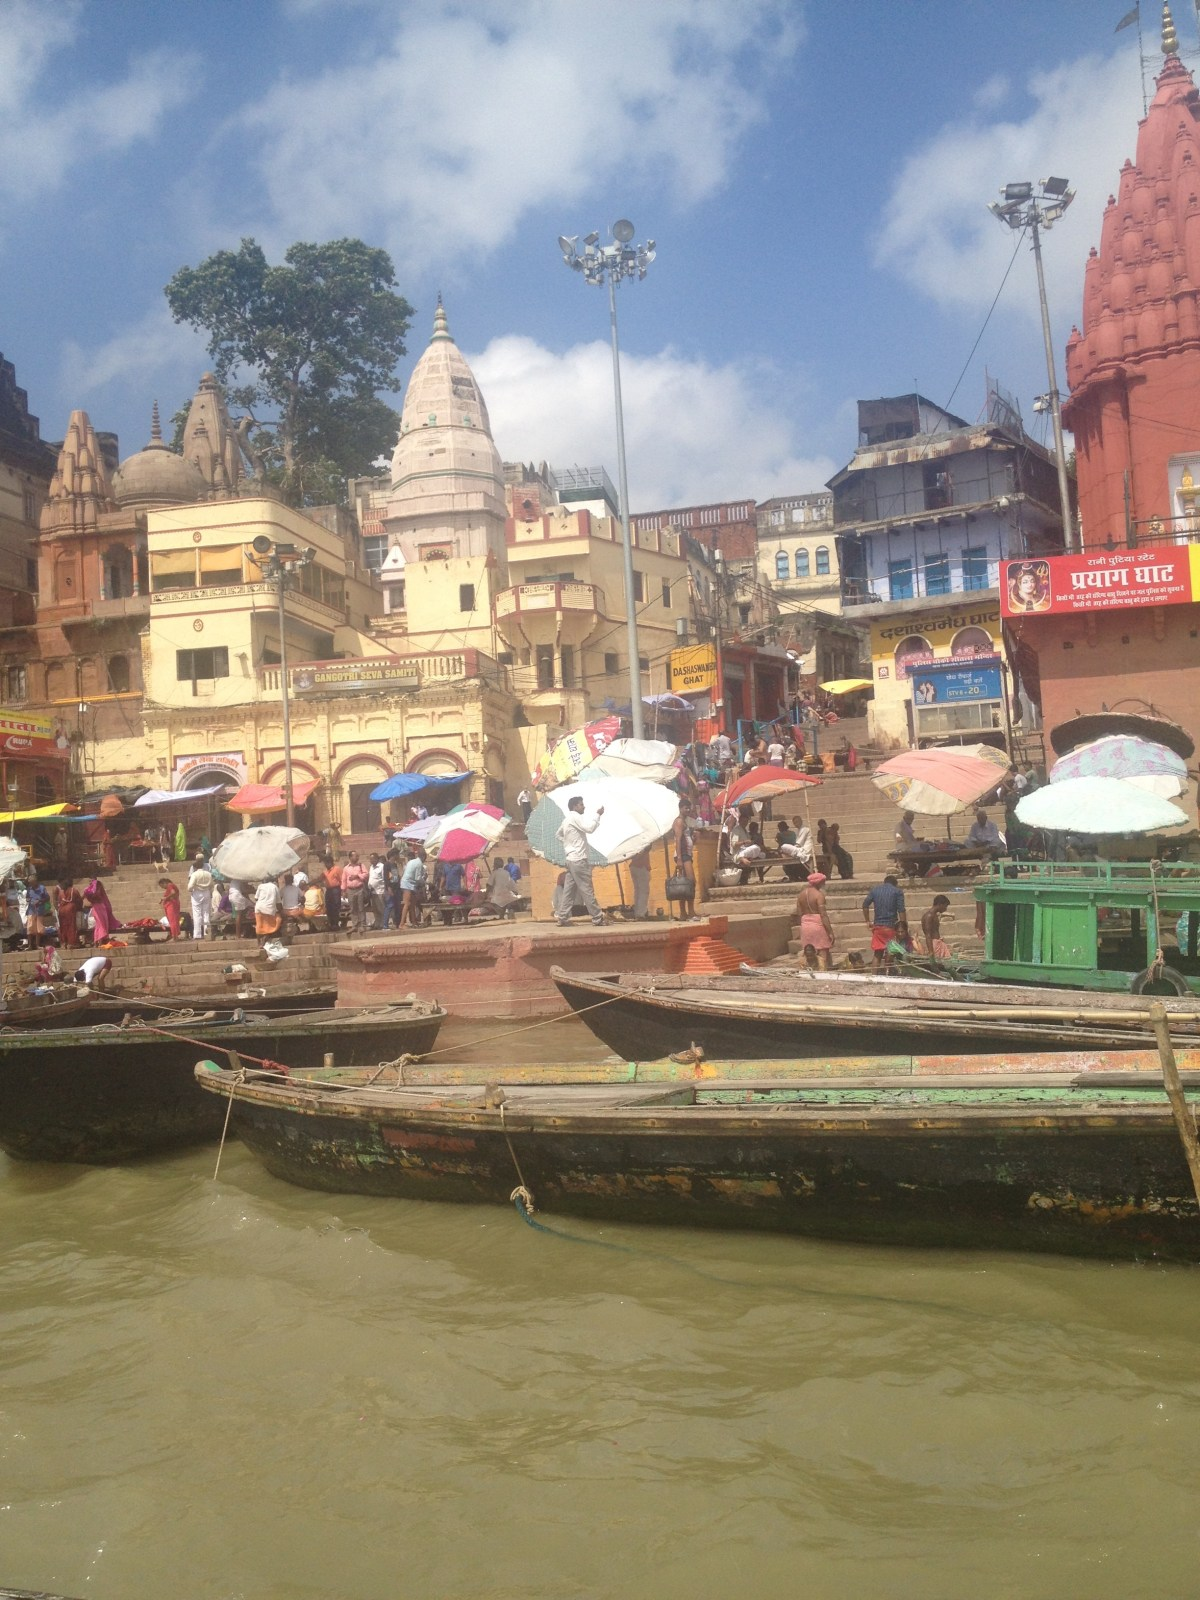 Varanasi Tourism: Our Ganges River Ride